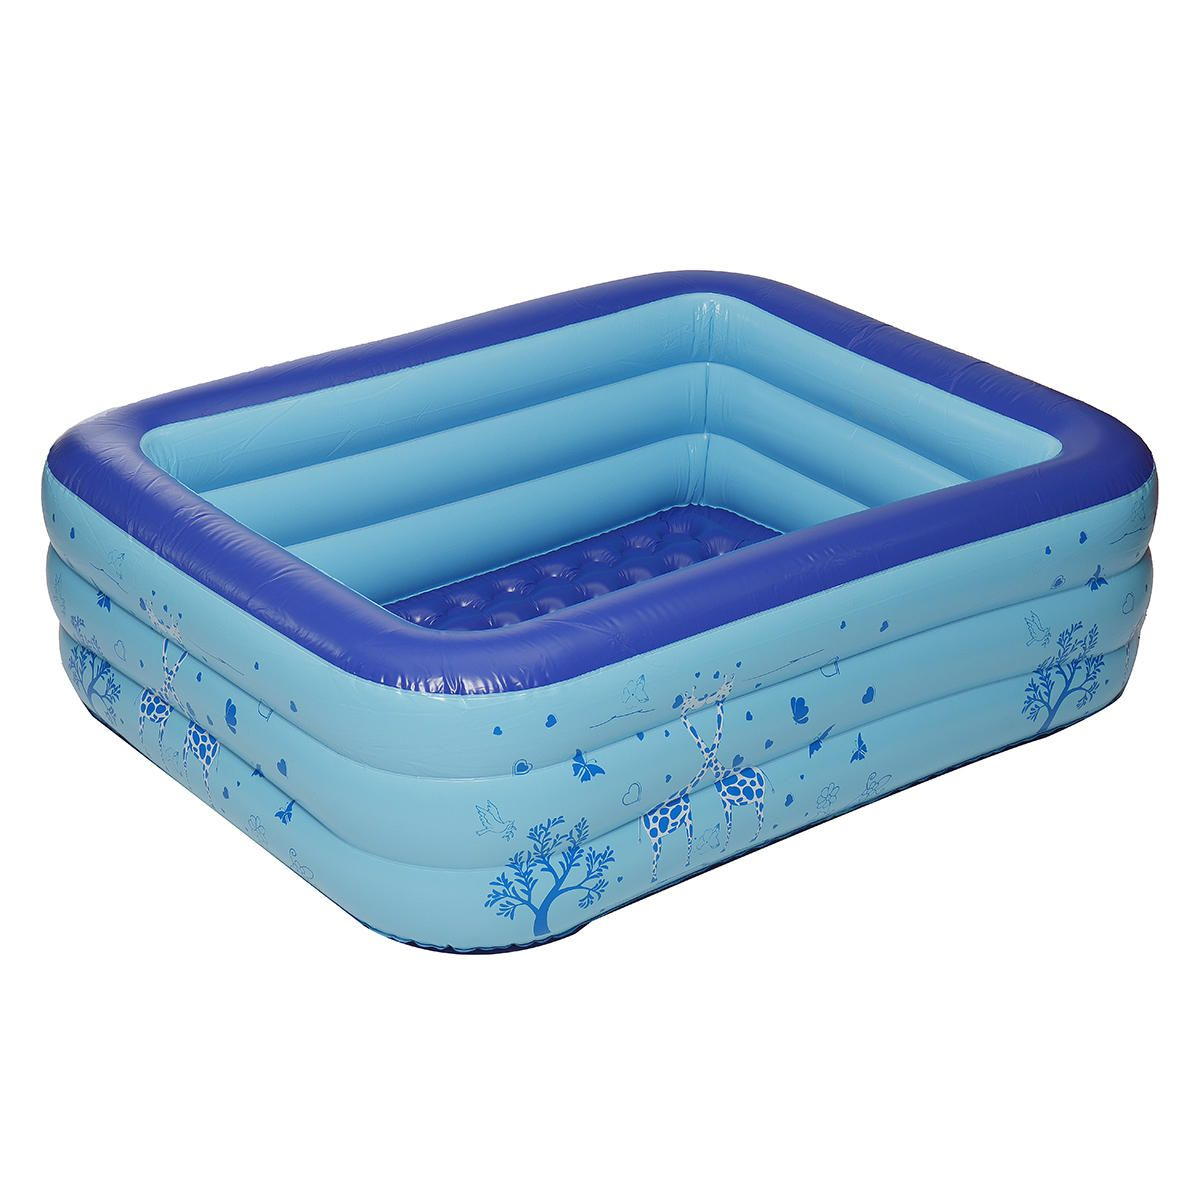 XYO US$33.99~87.99 1.2M/1.3M/1.5M/1.8M/2.1M Inflatable Swimming Pool Outdoor Children Bathtub Summer Fun Water Pool